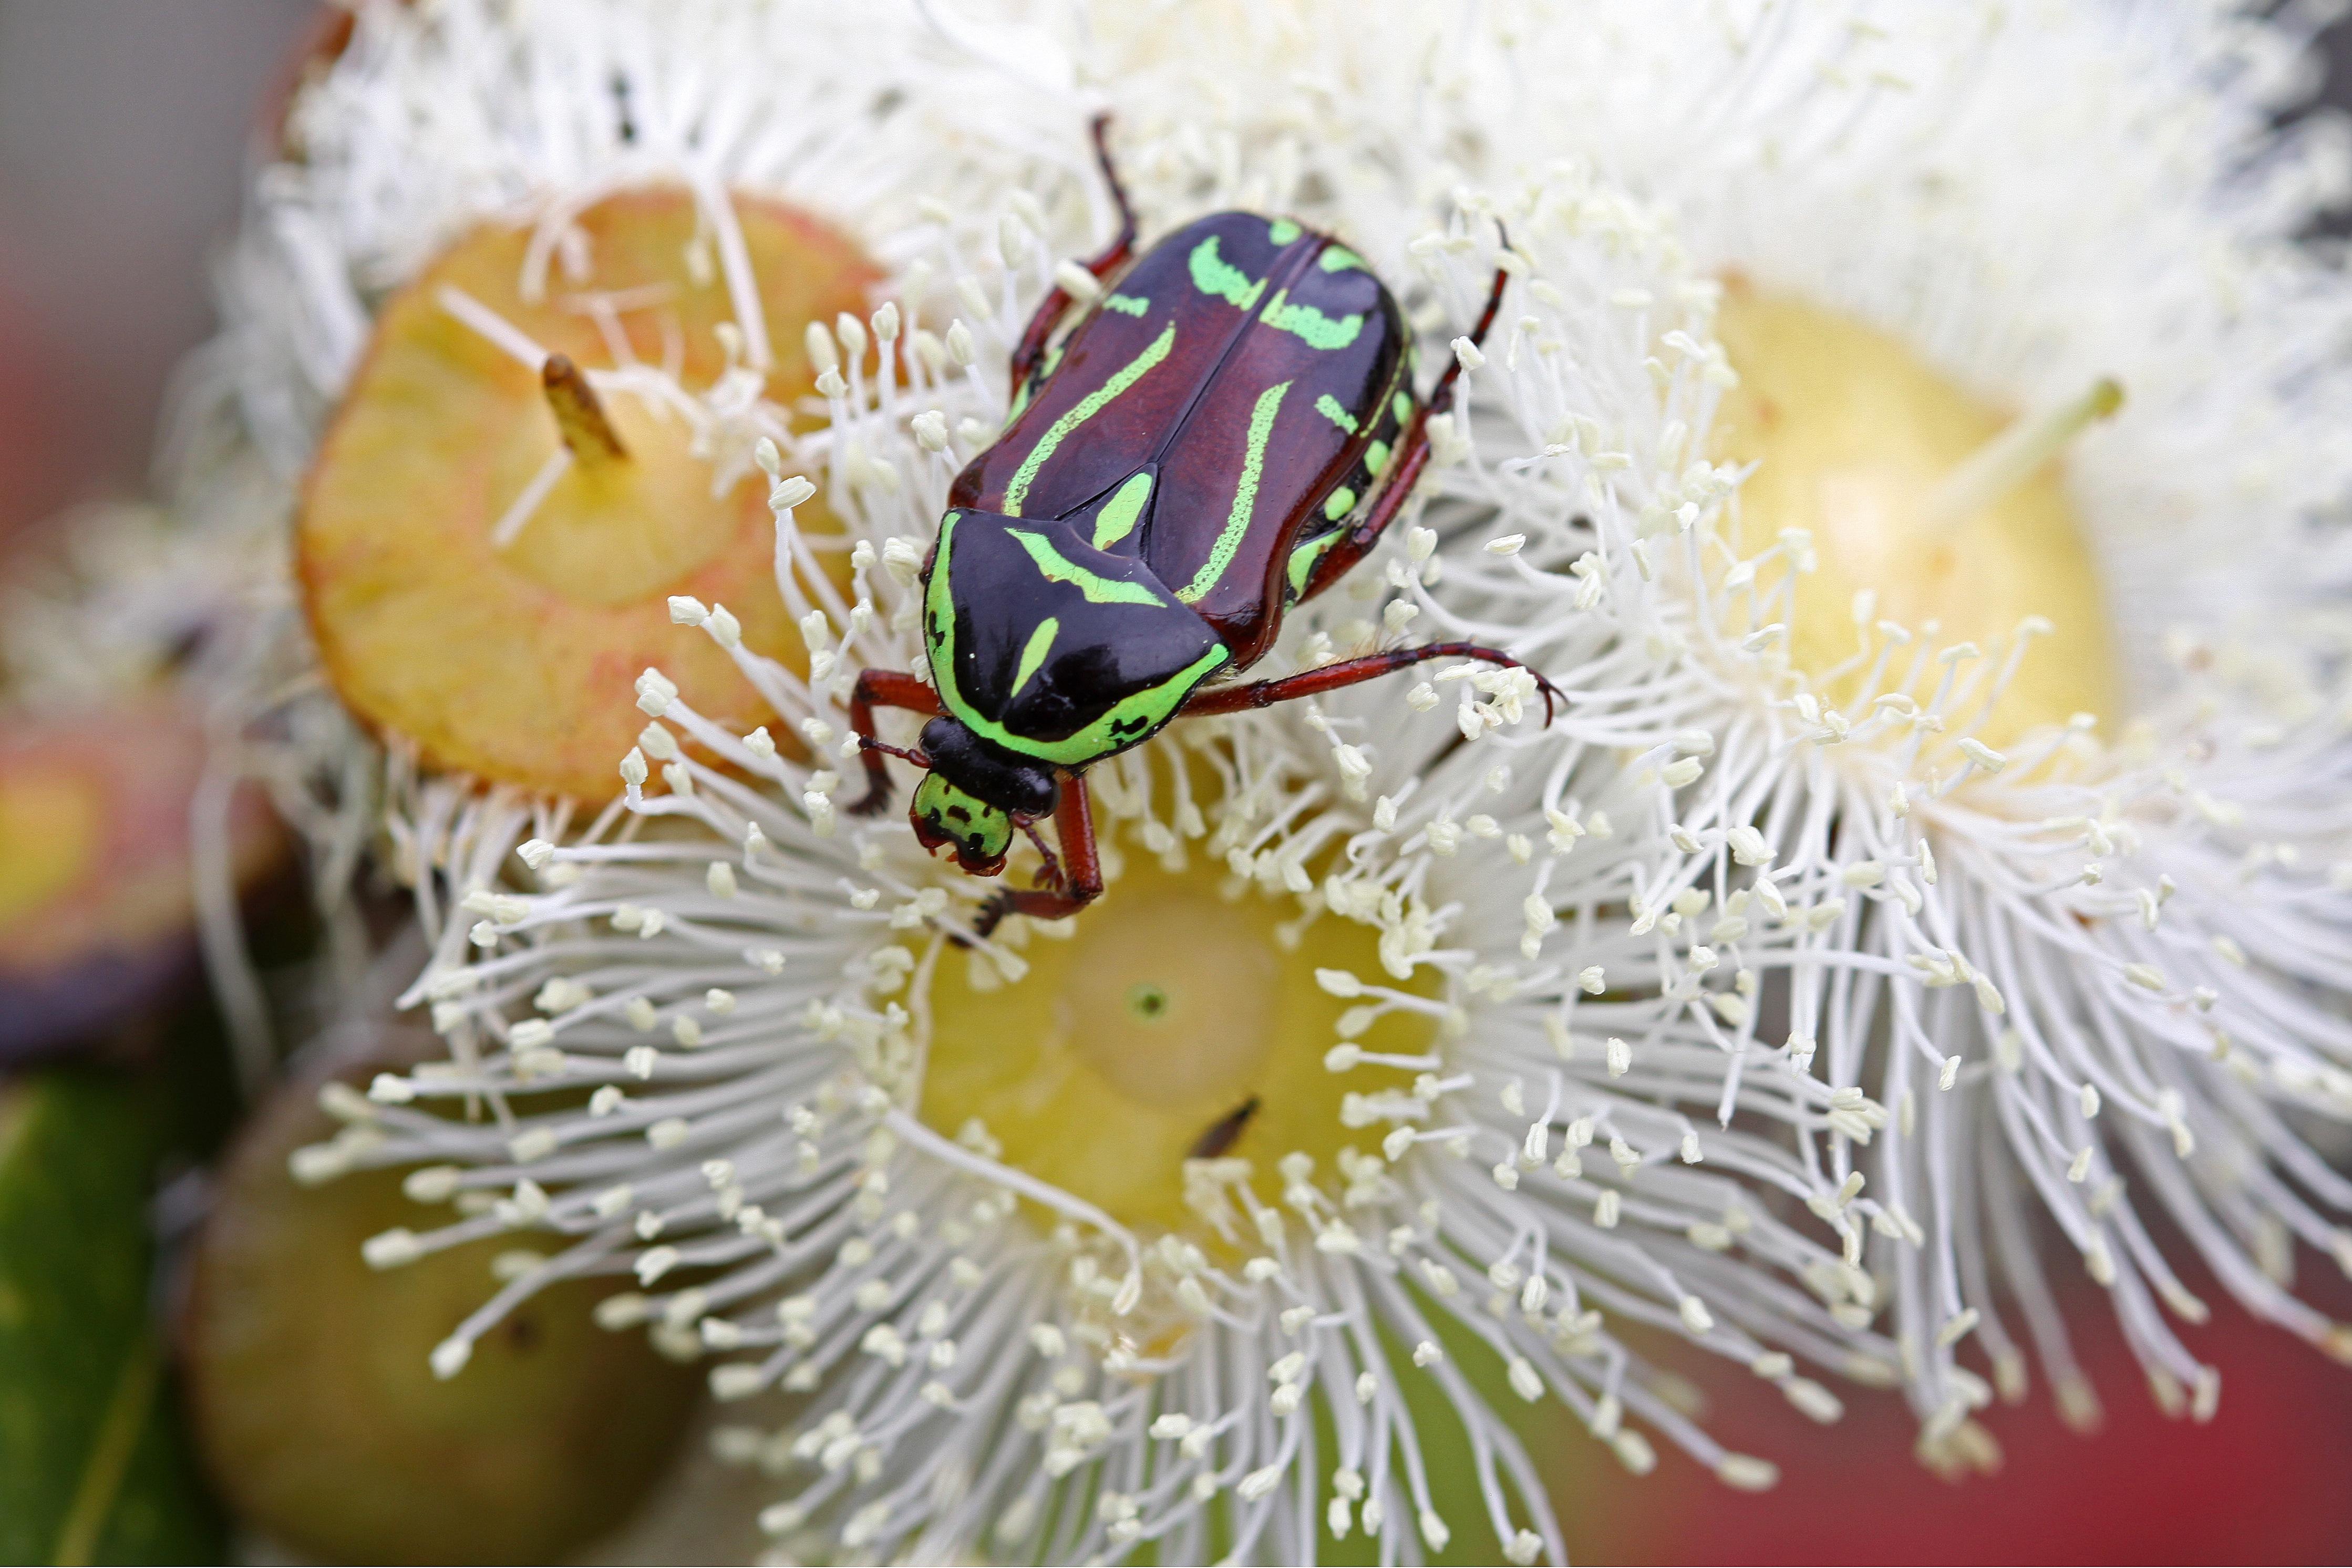 Beetle-on-Flower-©-Peter-Sparkes.jpg